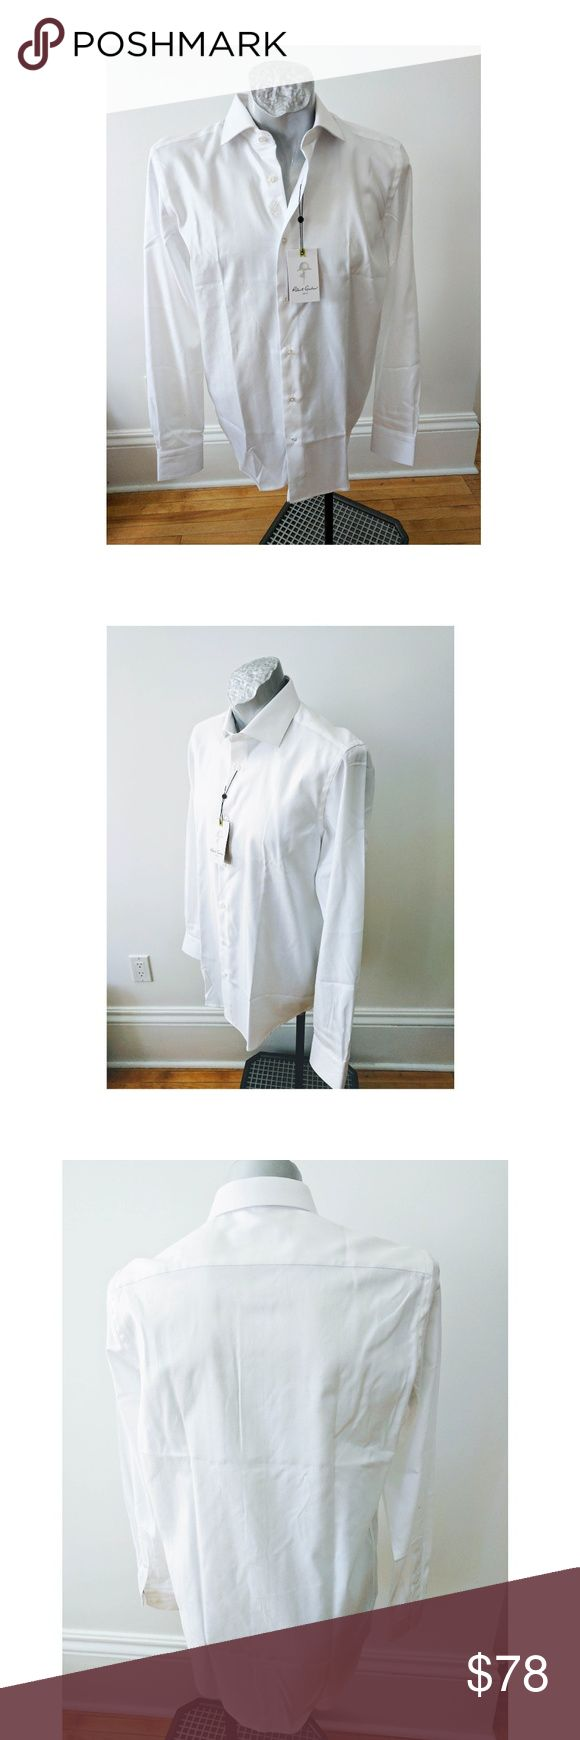 """Robert Graham Lambert White Biz Shirt 15.5 LS 36 Robert Graham White Lambert Business Cotton Button Men Shirt Sz 15.5 S M LS  Size  15.5 / M  White with line pattern ( under cuff red top stiching - can't been seen when cuffs buttons)  Long Sleeve  Length  32""""  ( by collar seam to shirt hem)  Chest   22""""    ( measured flat - multiply by 2 for circumference)  Sleeve length 36 """" (from center back at nec seam to bottom of cuff) -   Flaw : on underside of one cuff there is a small mark - arrow…"""